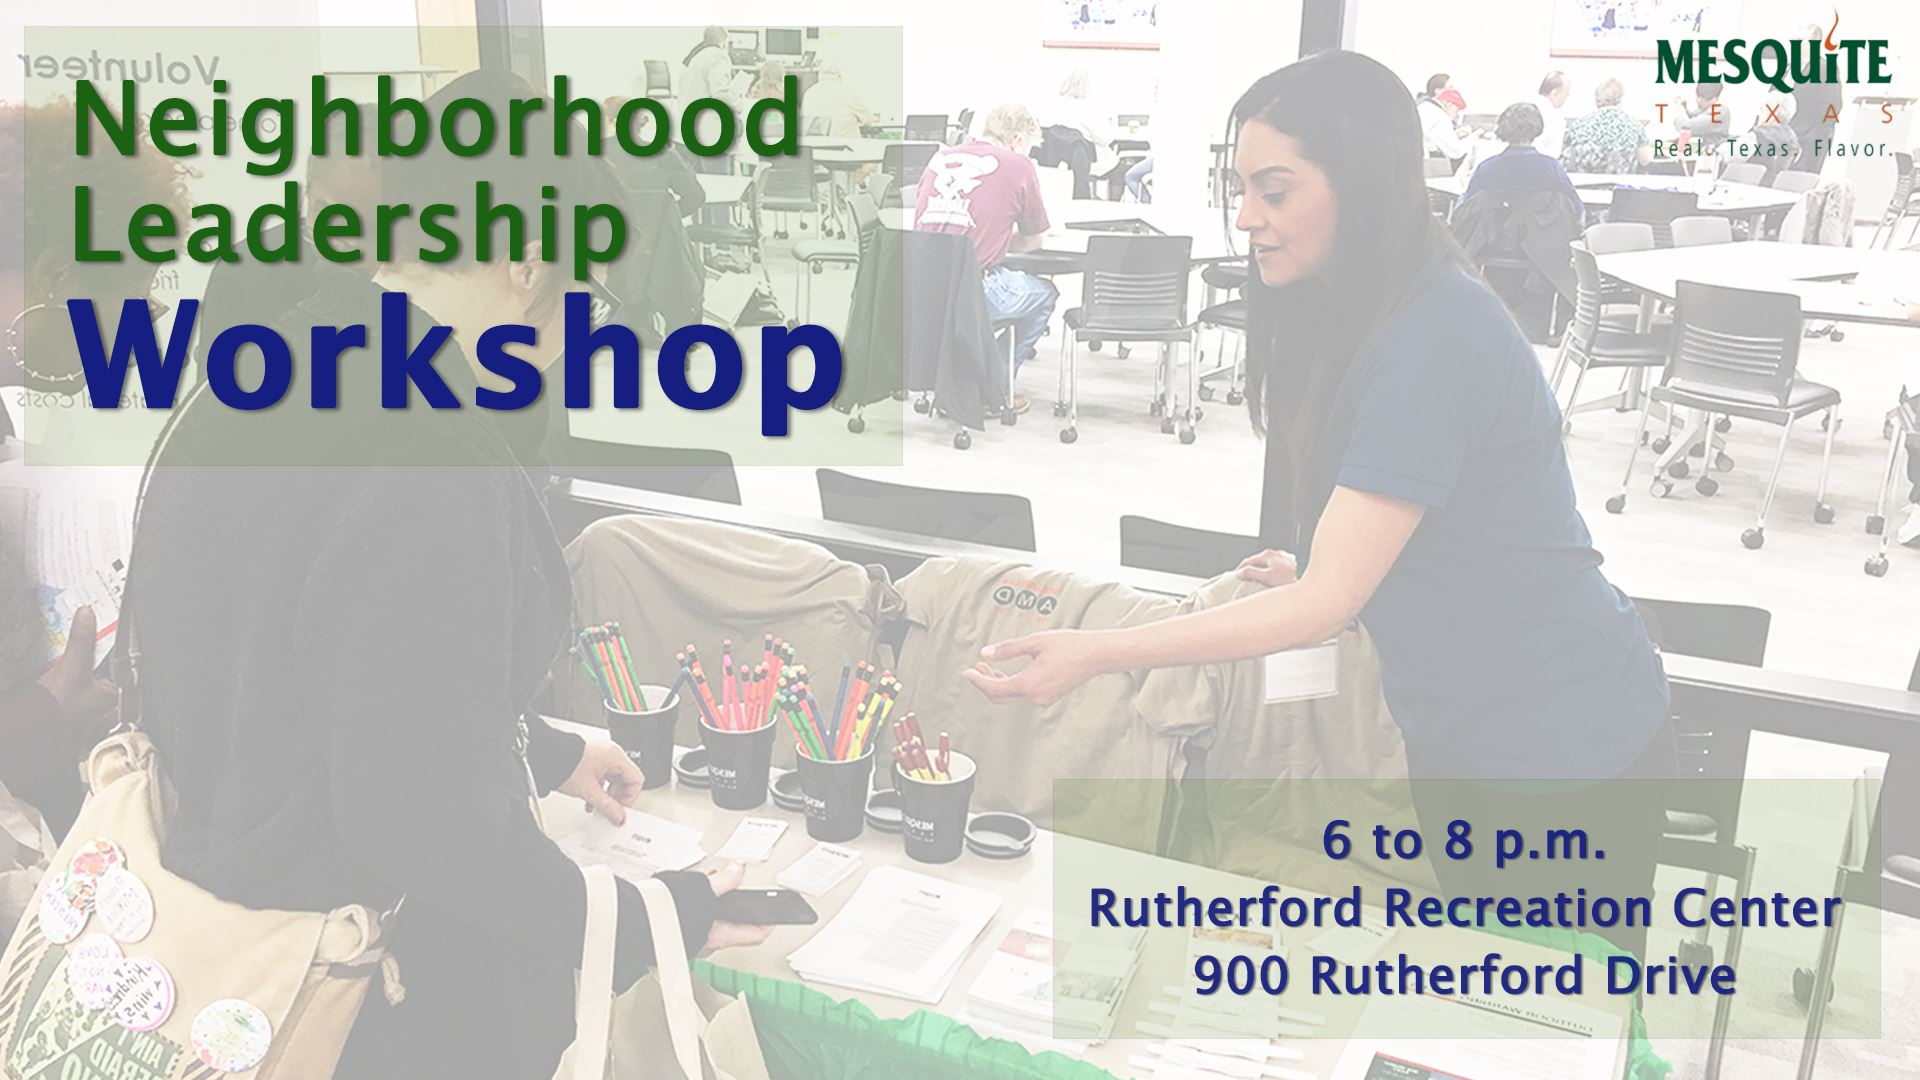 Neighborhood Leadership Workshop